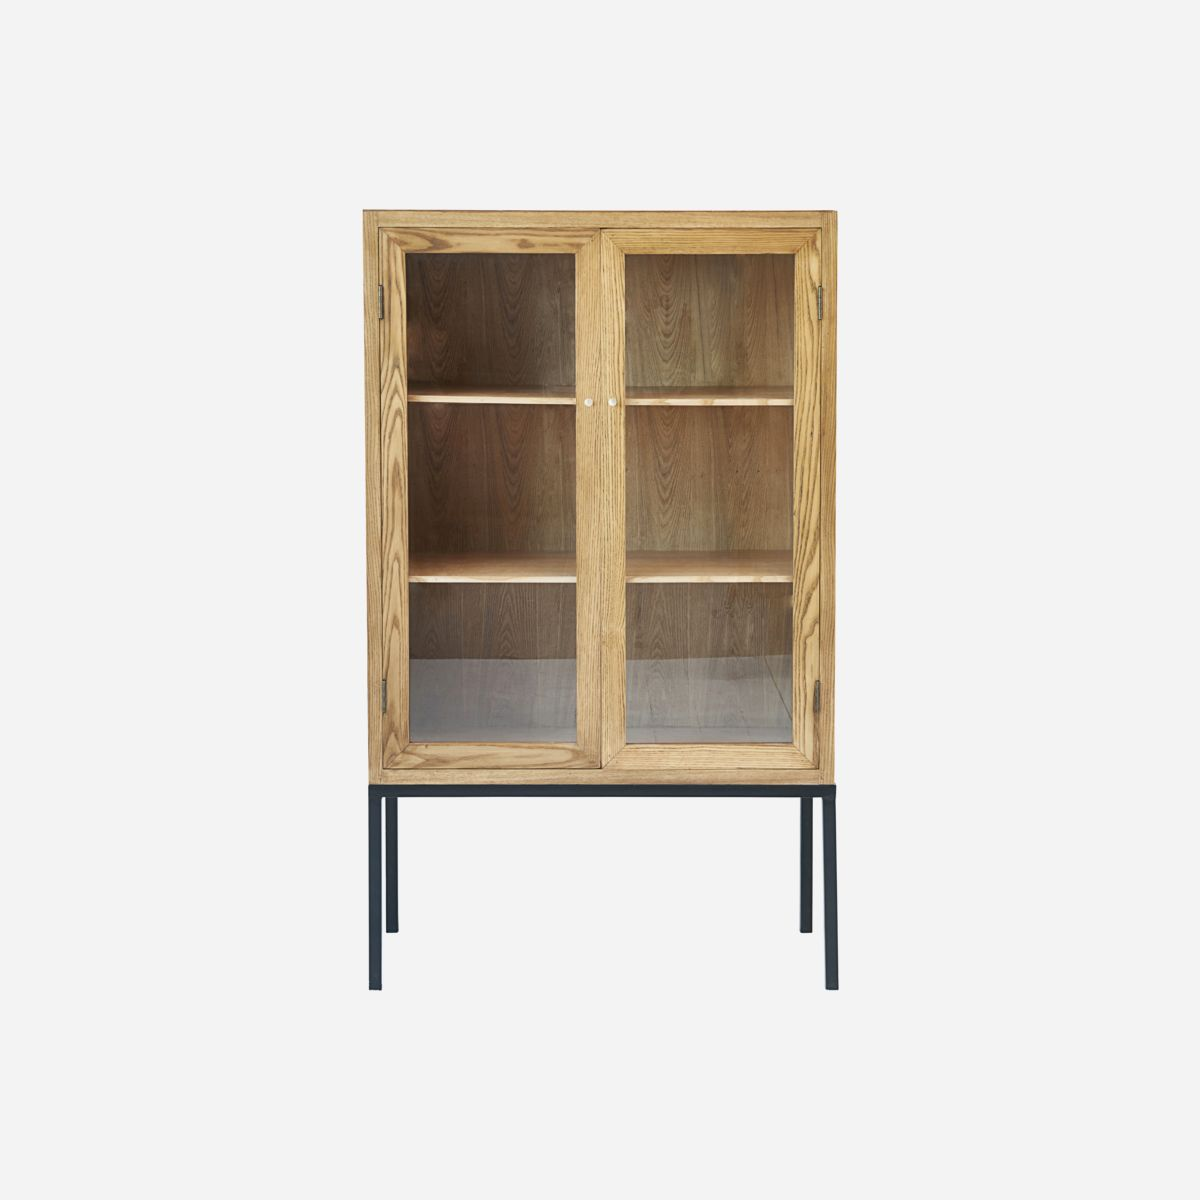 Image of   House doctor kabinet cosmo 2 døre l90 cm b40 cm h150 cm